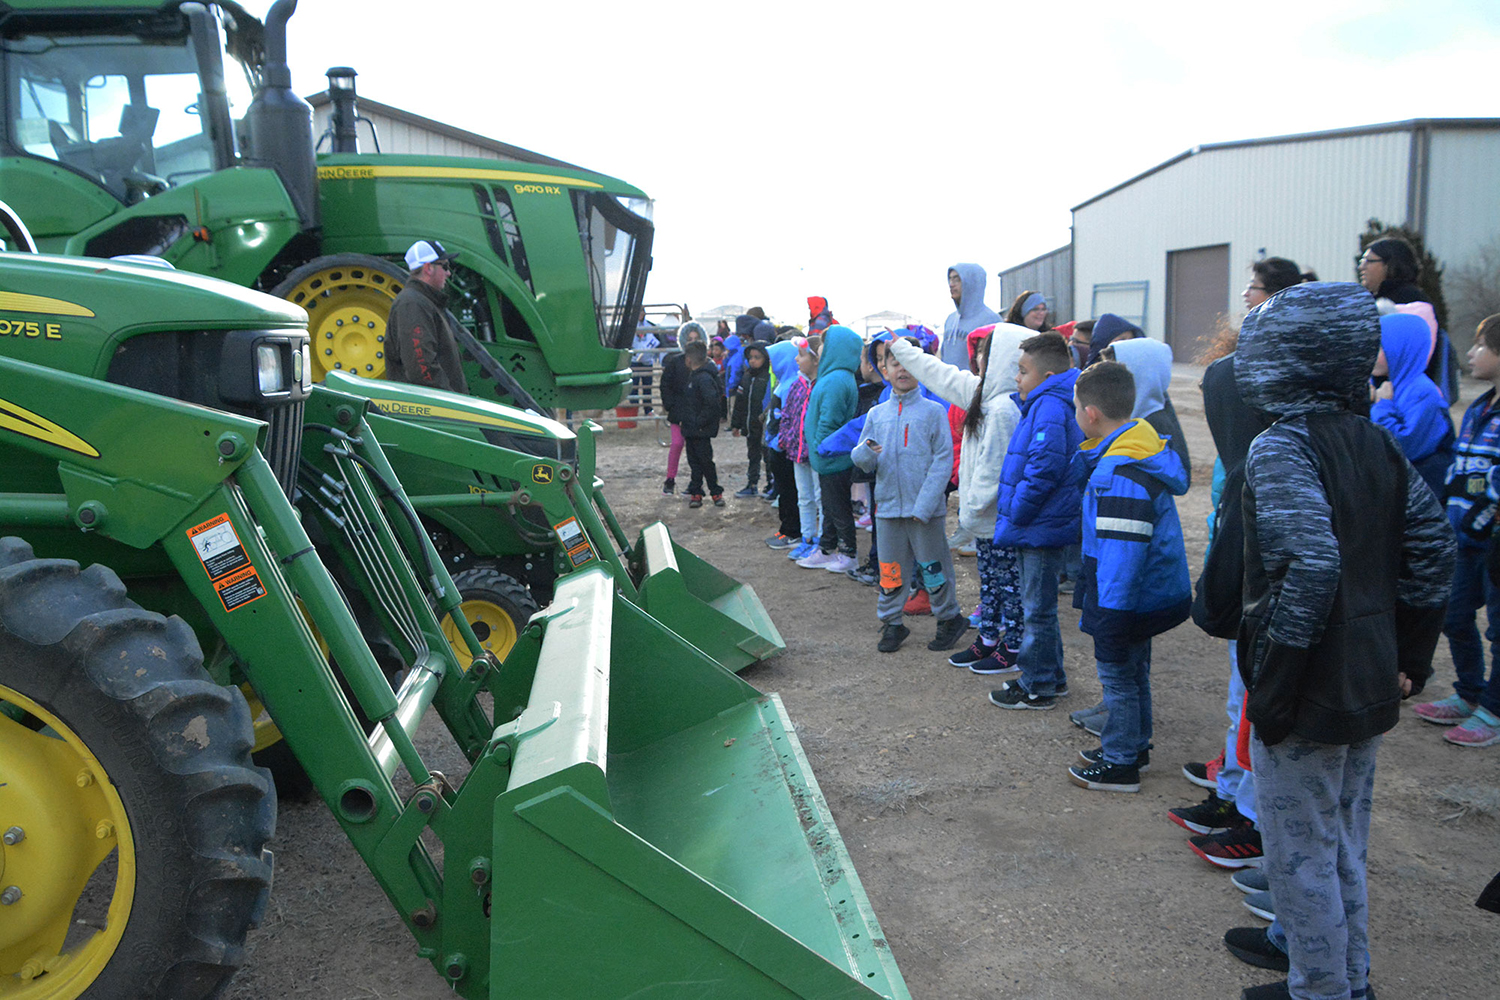 Students gather around tractors and discuss their roles in agriculture. This was part of farm day on Mar. 19.